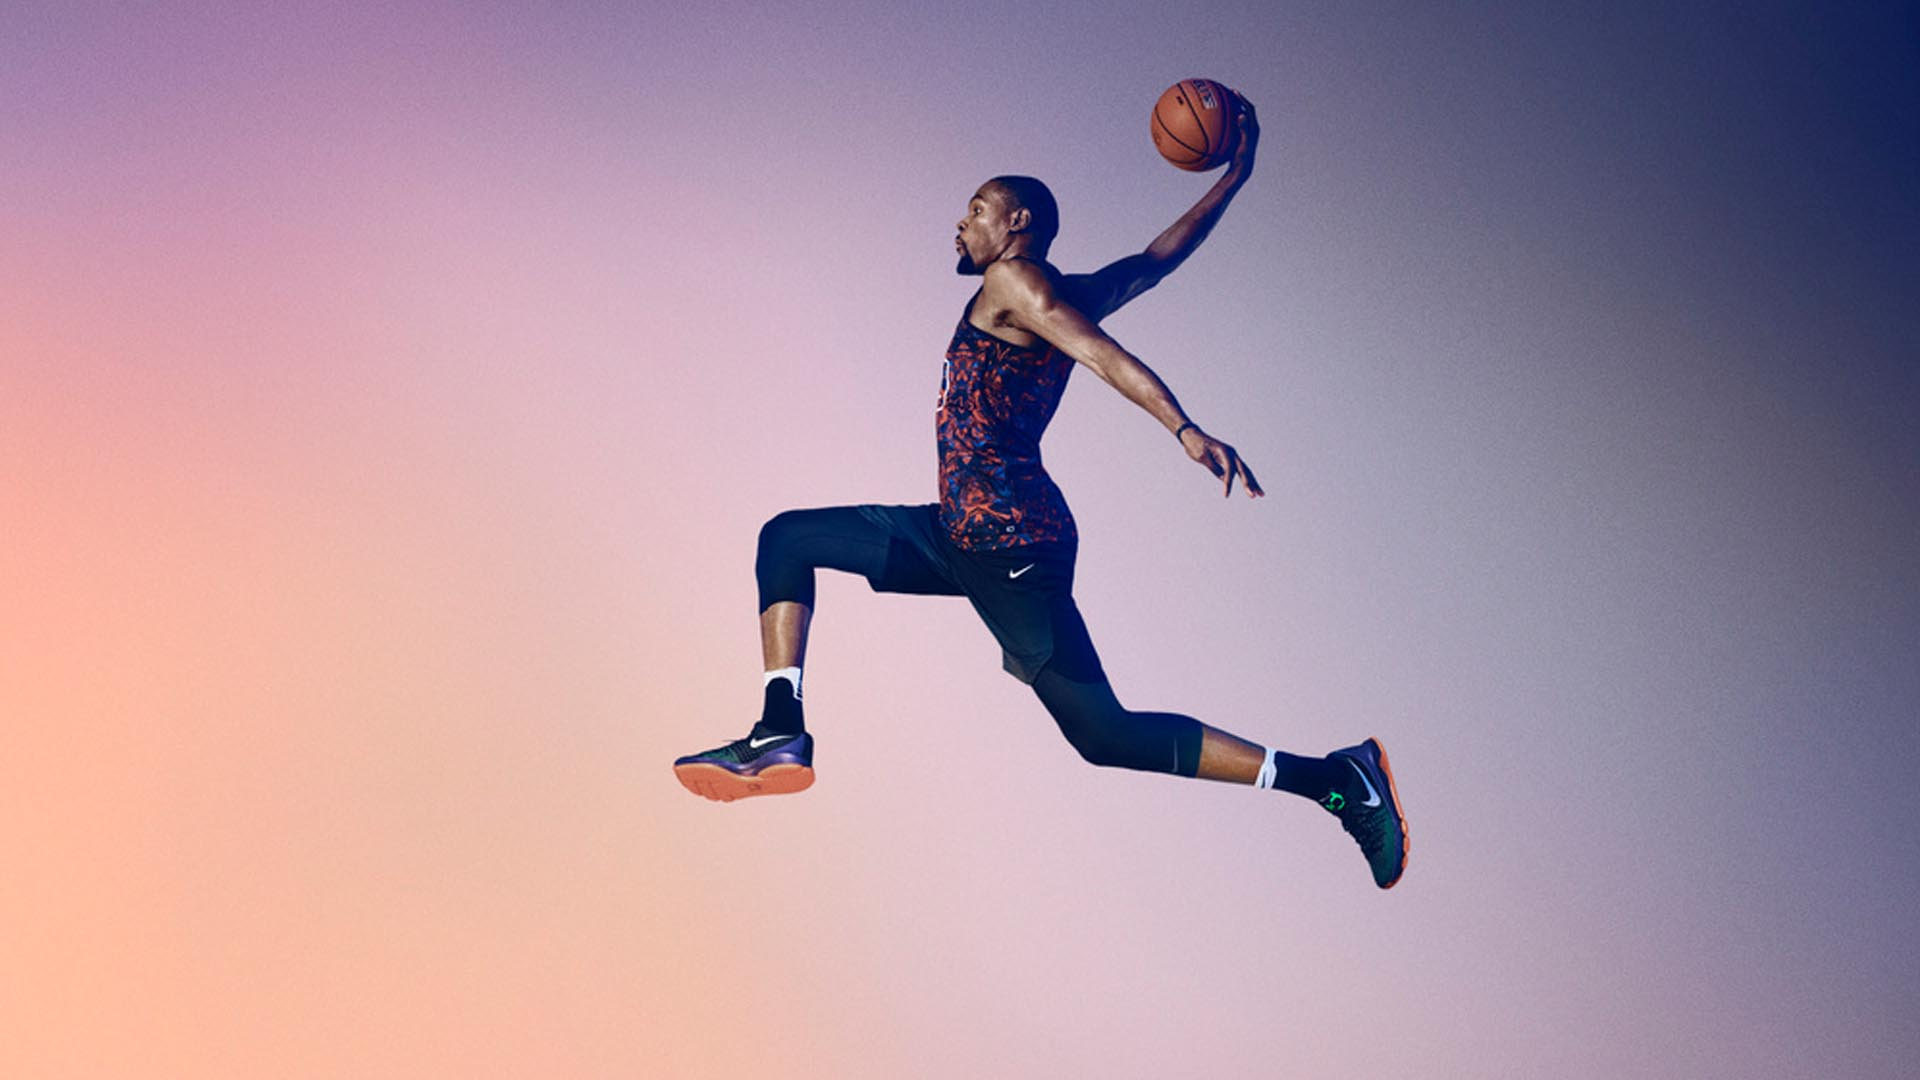 NIKE 15% Cash Back Through Lemoney With Turbo Cashback